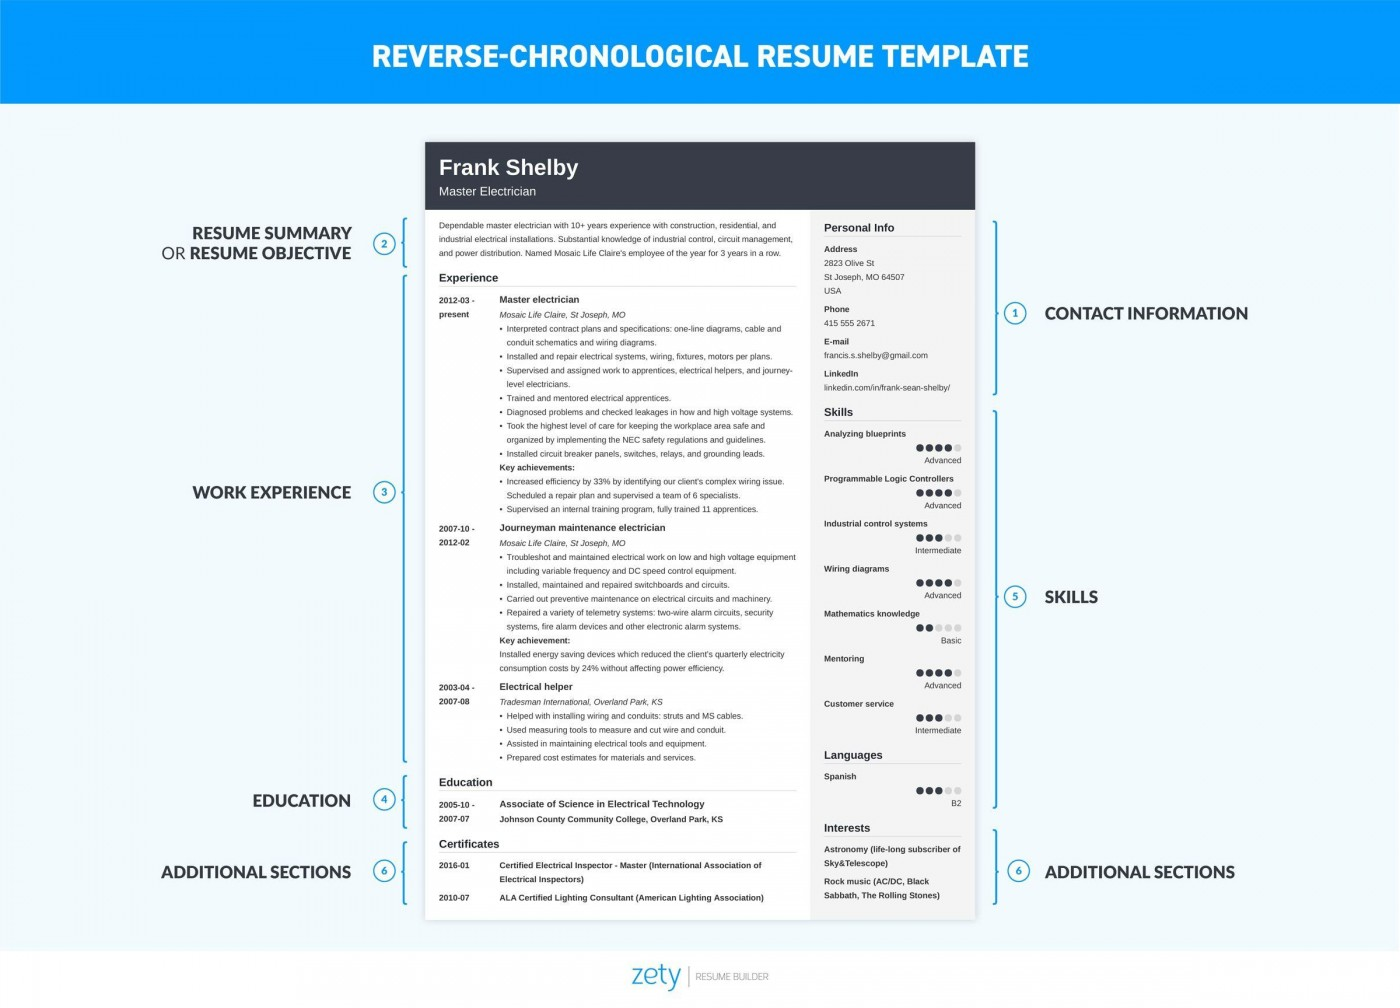 006 Dreaded Free Chronological Resume Template Idea  2020 Cv1400